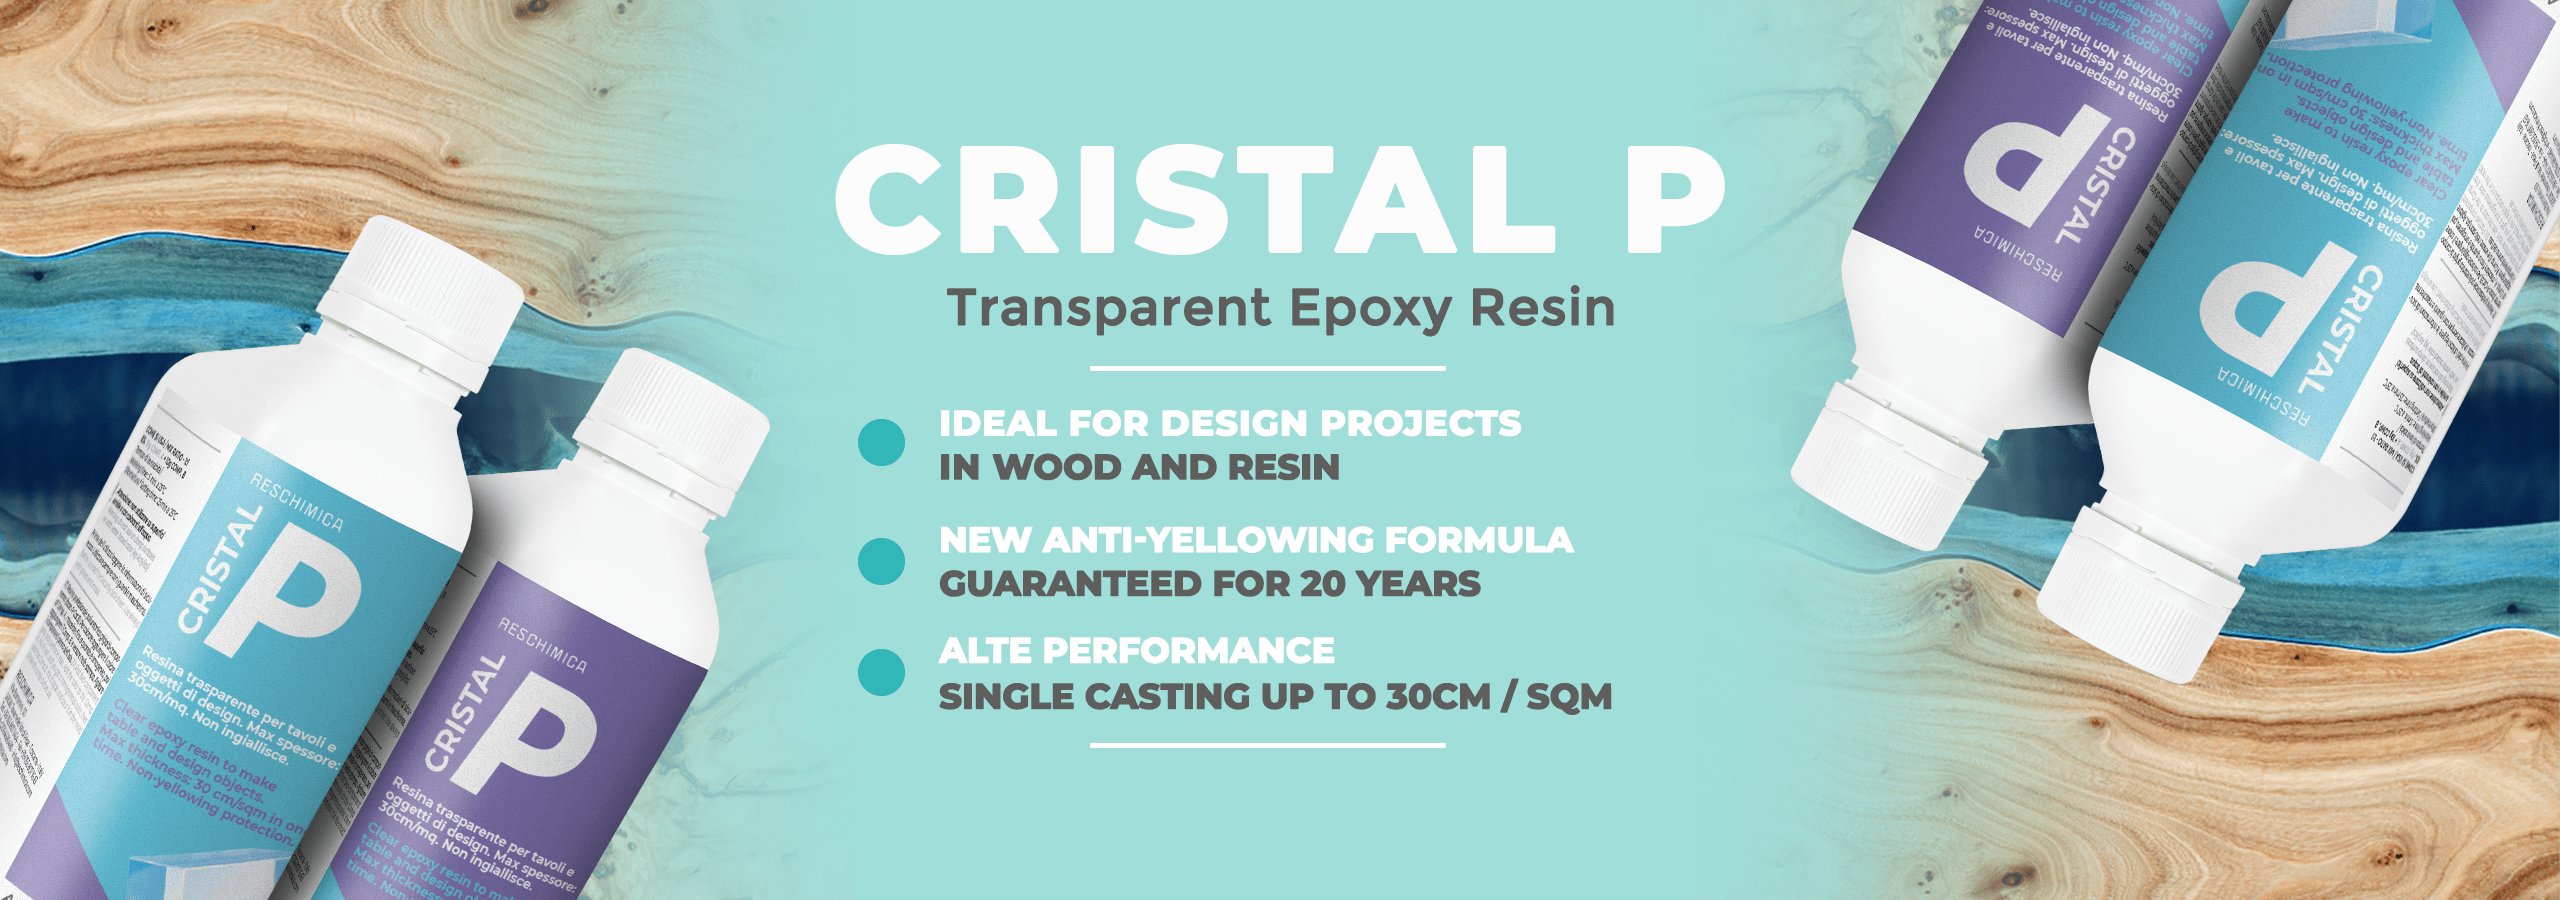 reschimica epoxy and polyurethane resins  cristal p